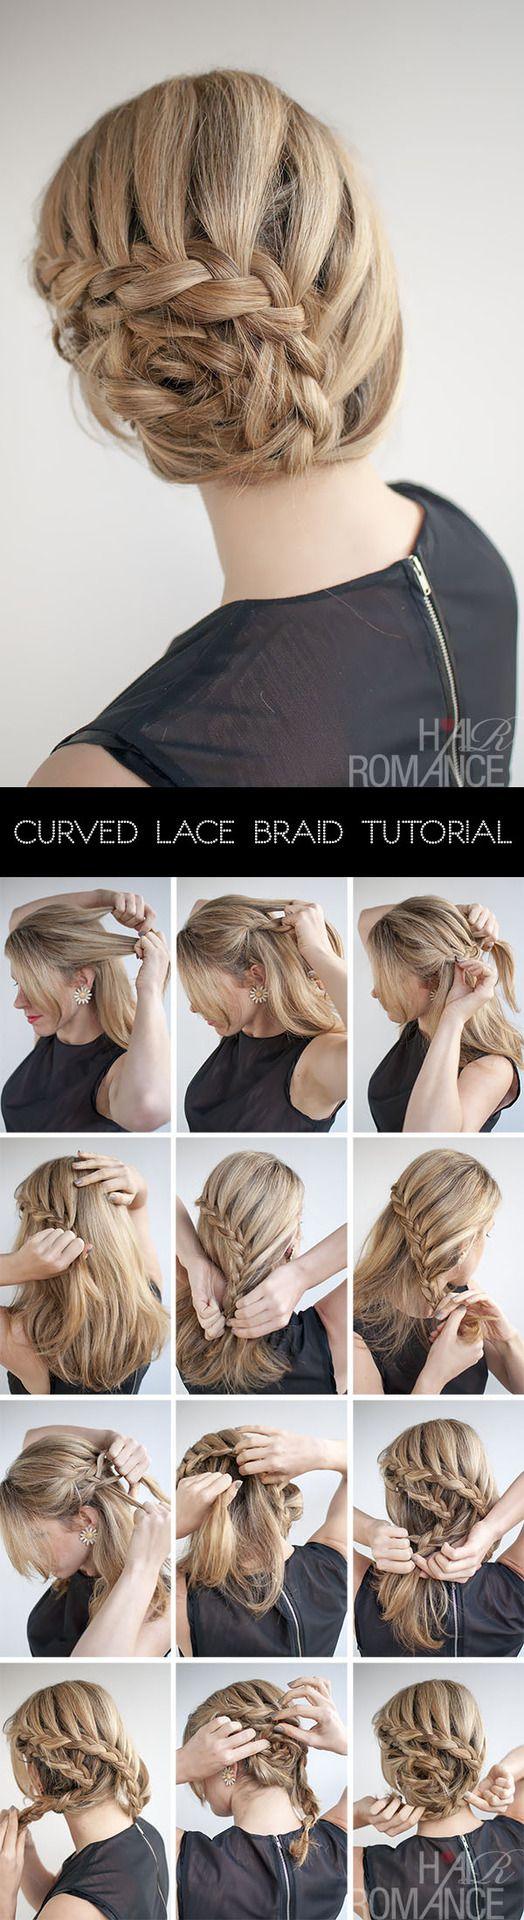 Prime 1000 Ideas About Updo Hairstyle On Pinterest Hairstyles Short Hairstyles Gunalazisus